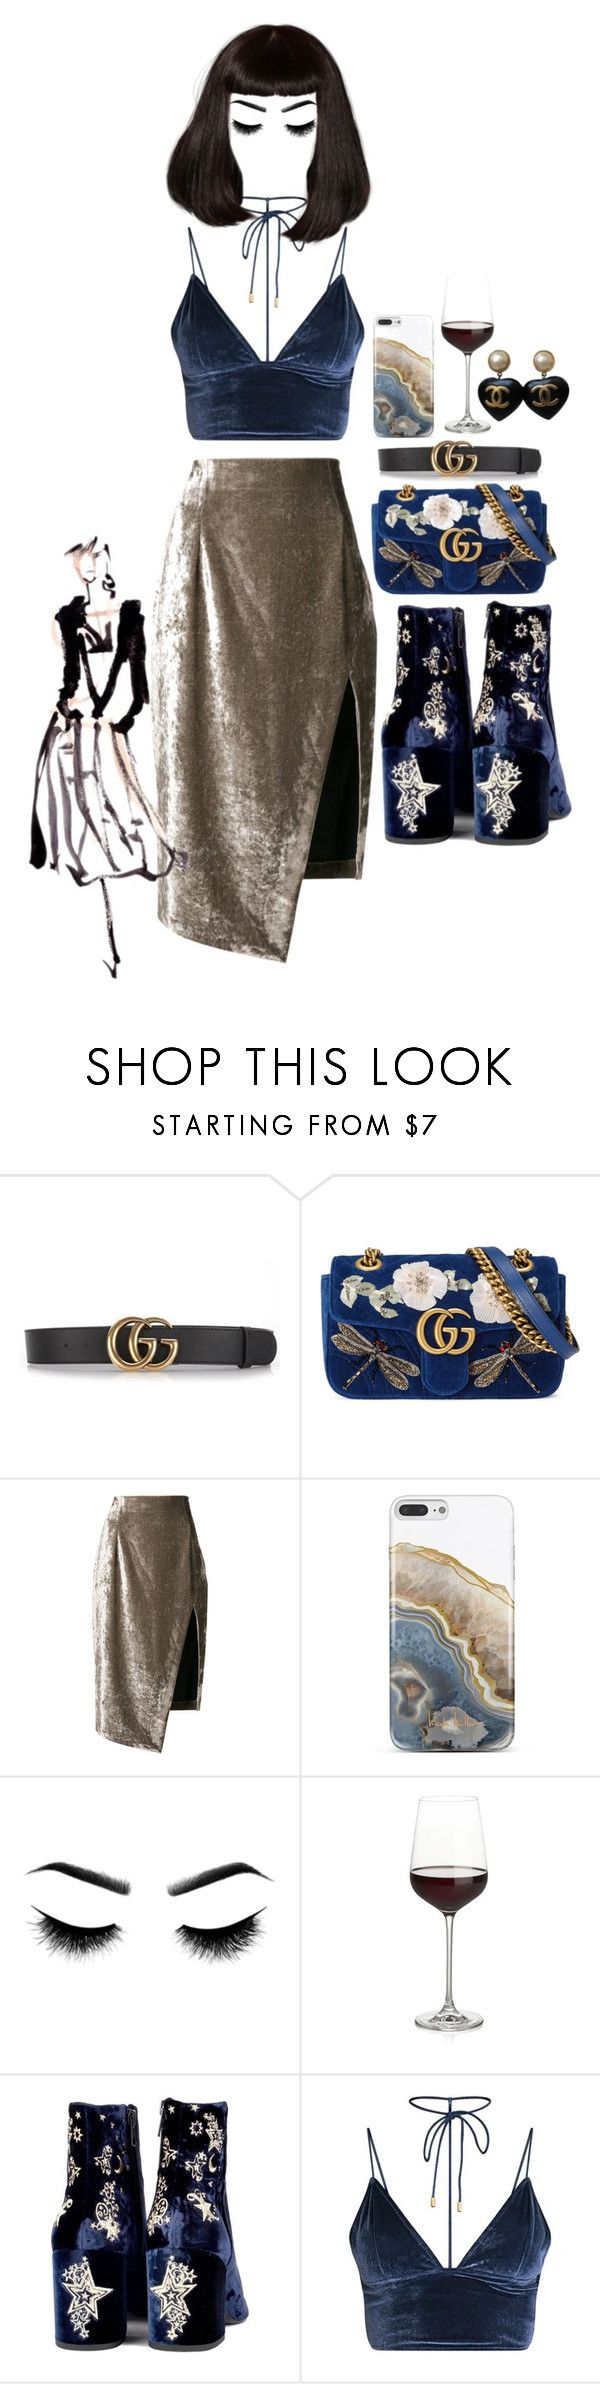 """""""4694"""" by dindonlarisa ❤ liked on Polyvore featuring Gucci, Off-White, Nanette Lepore, Crate and Barrel and Chanel"""